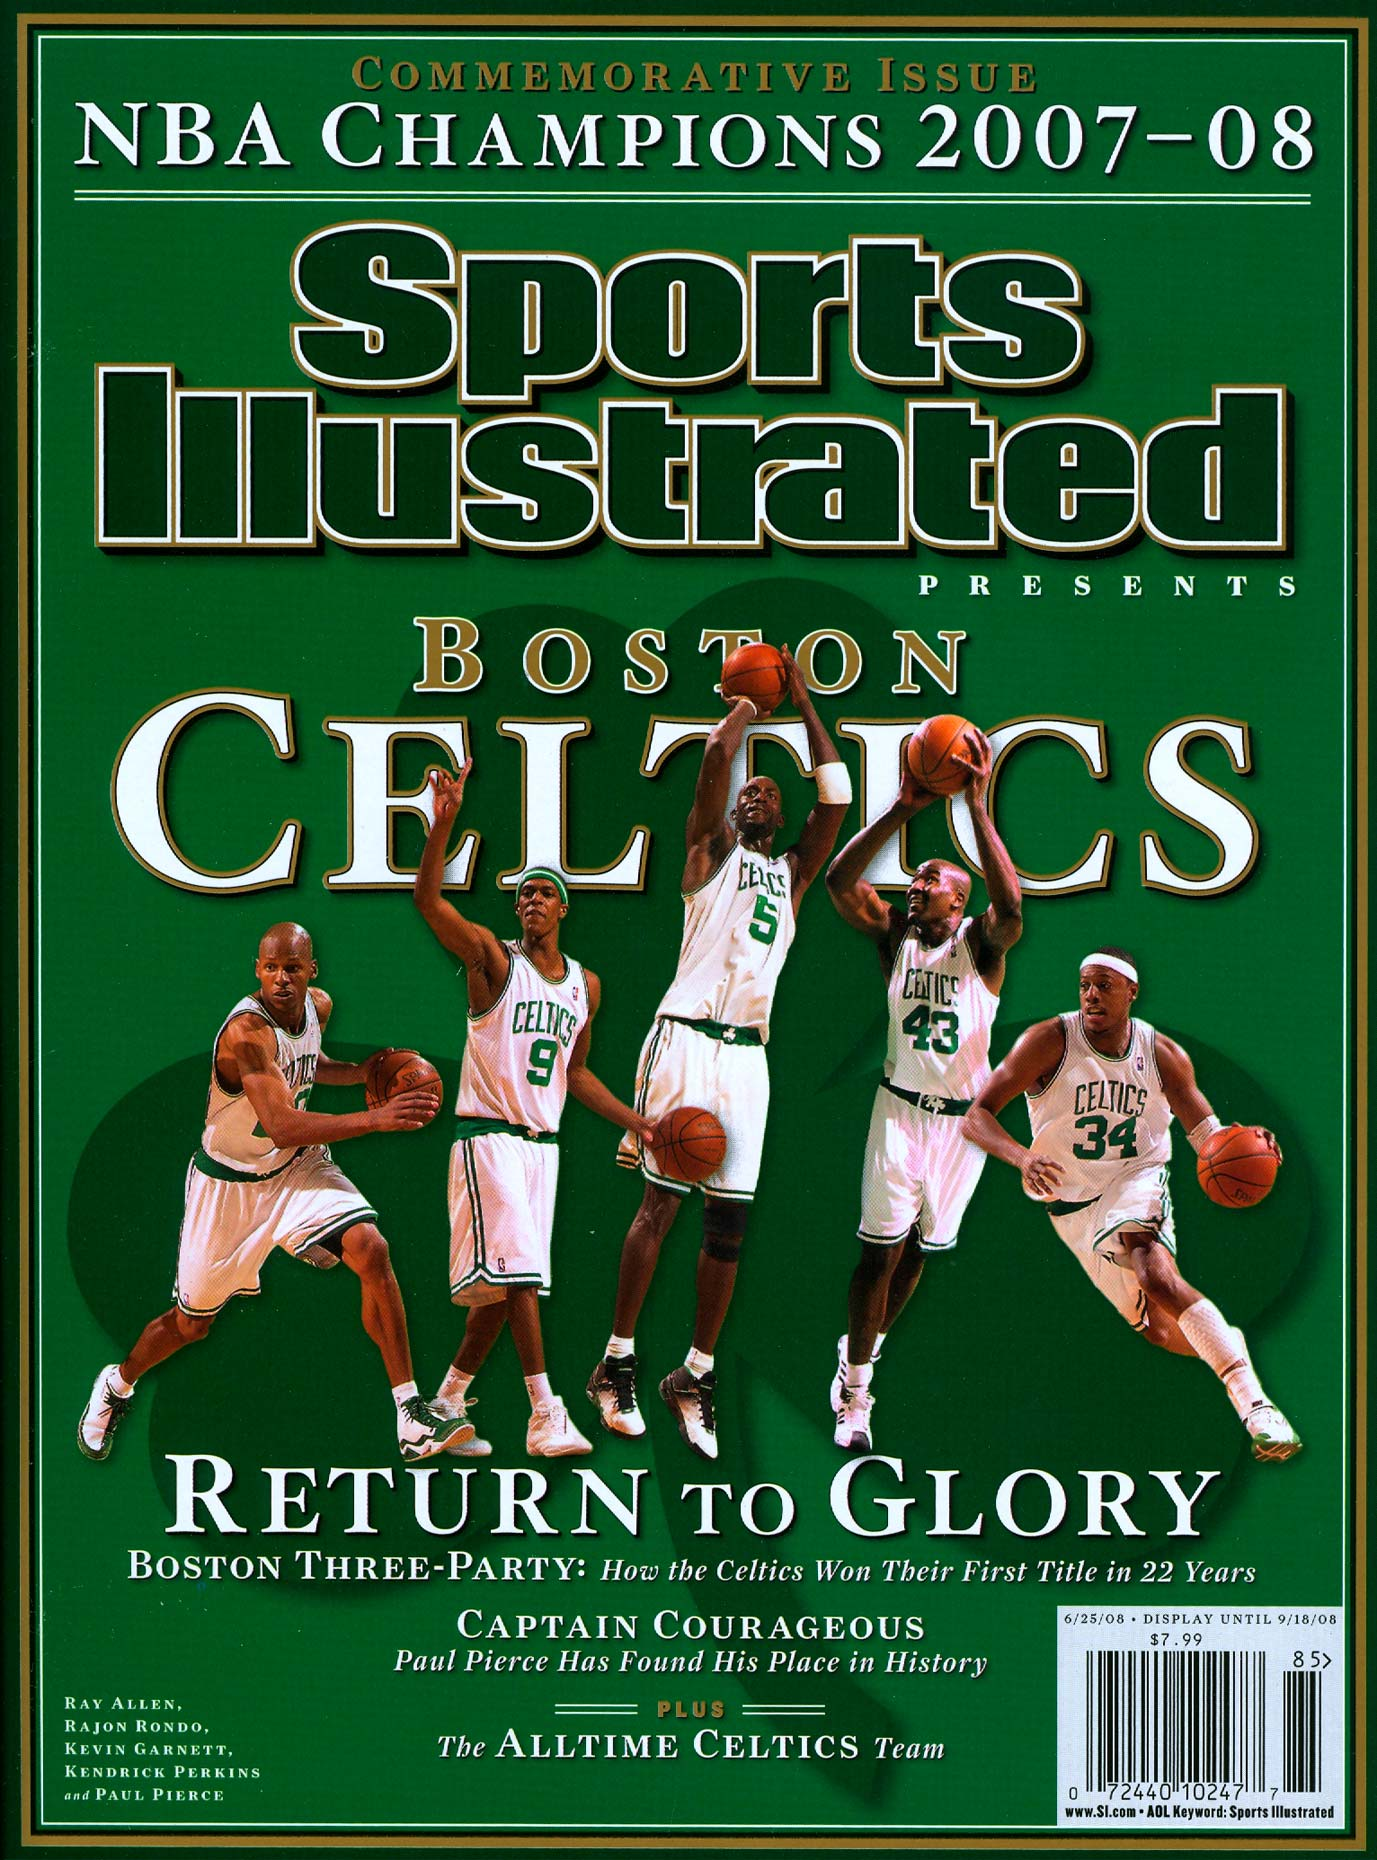 The Celtics on the cover of Sports Illustrated after winning the 2008 NBA title.